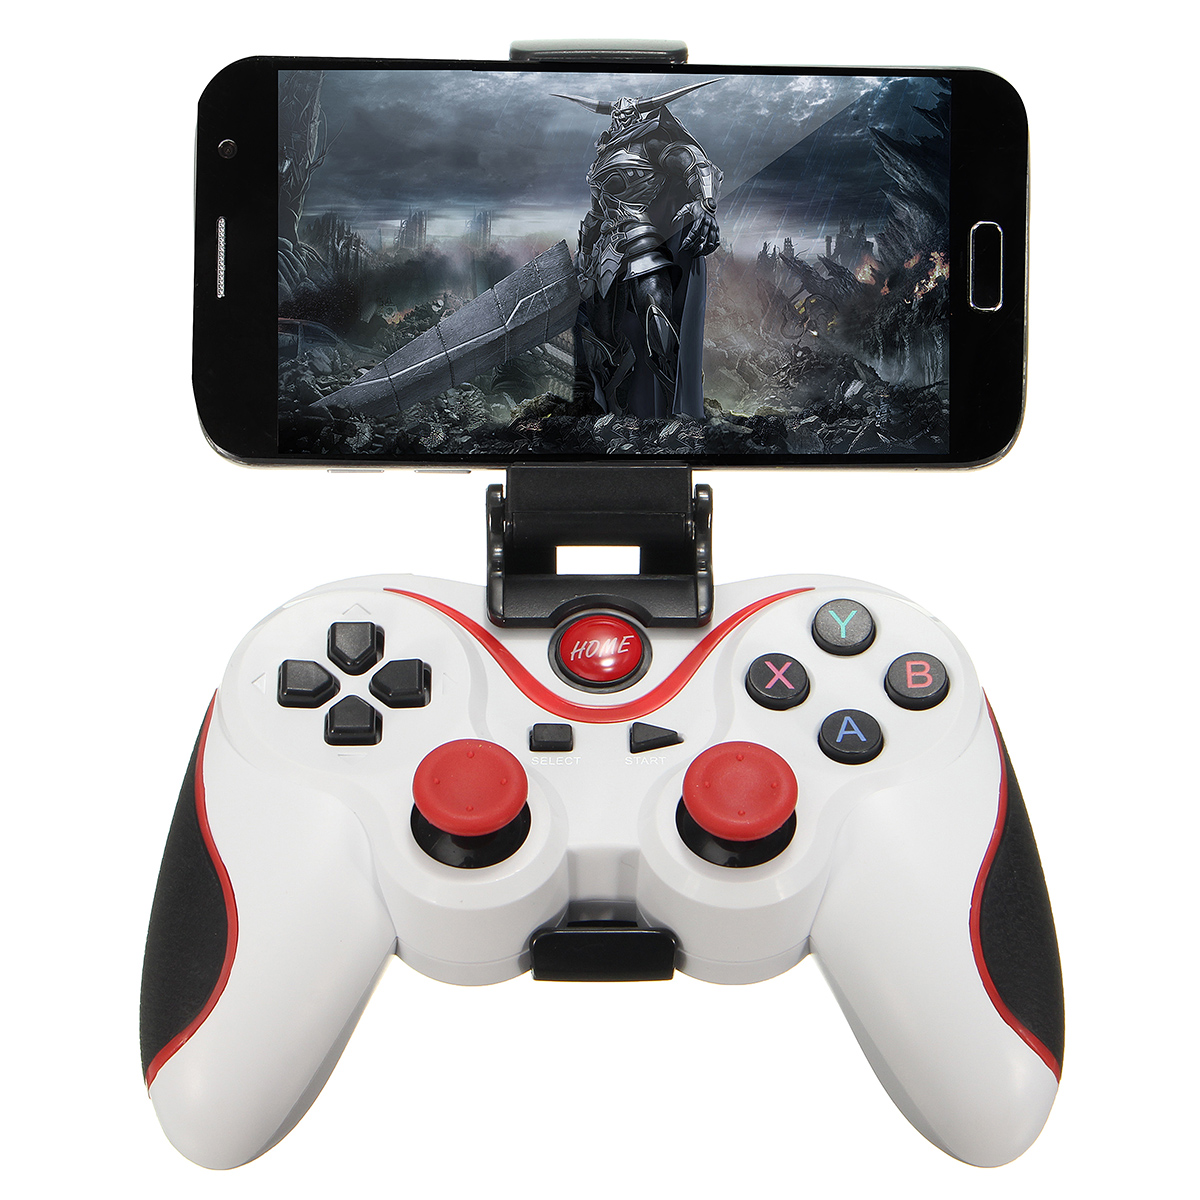 T3 Wireless Bluetooth Gamepad Gaming Controller for Android Smartphone Tablet PC with Mobile Phone Bracket Today's Special Offer!